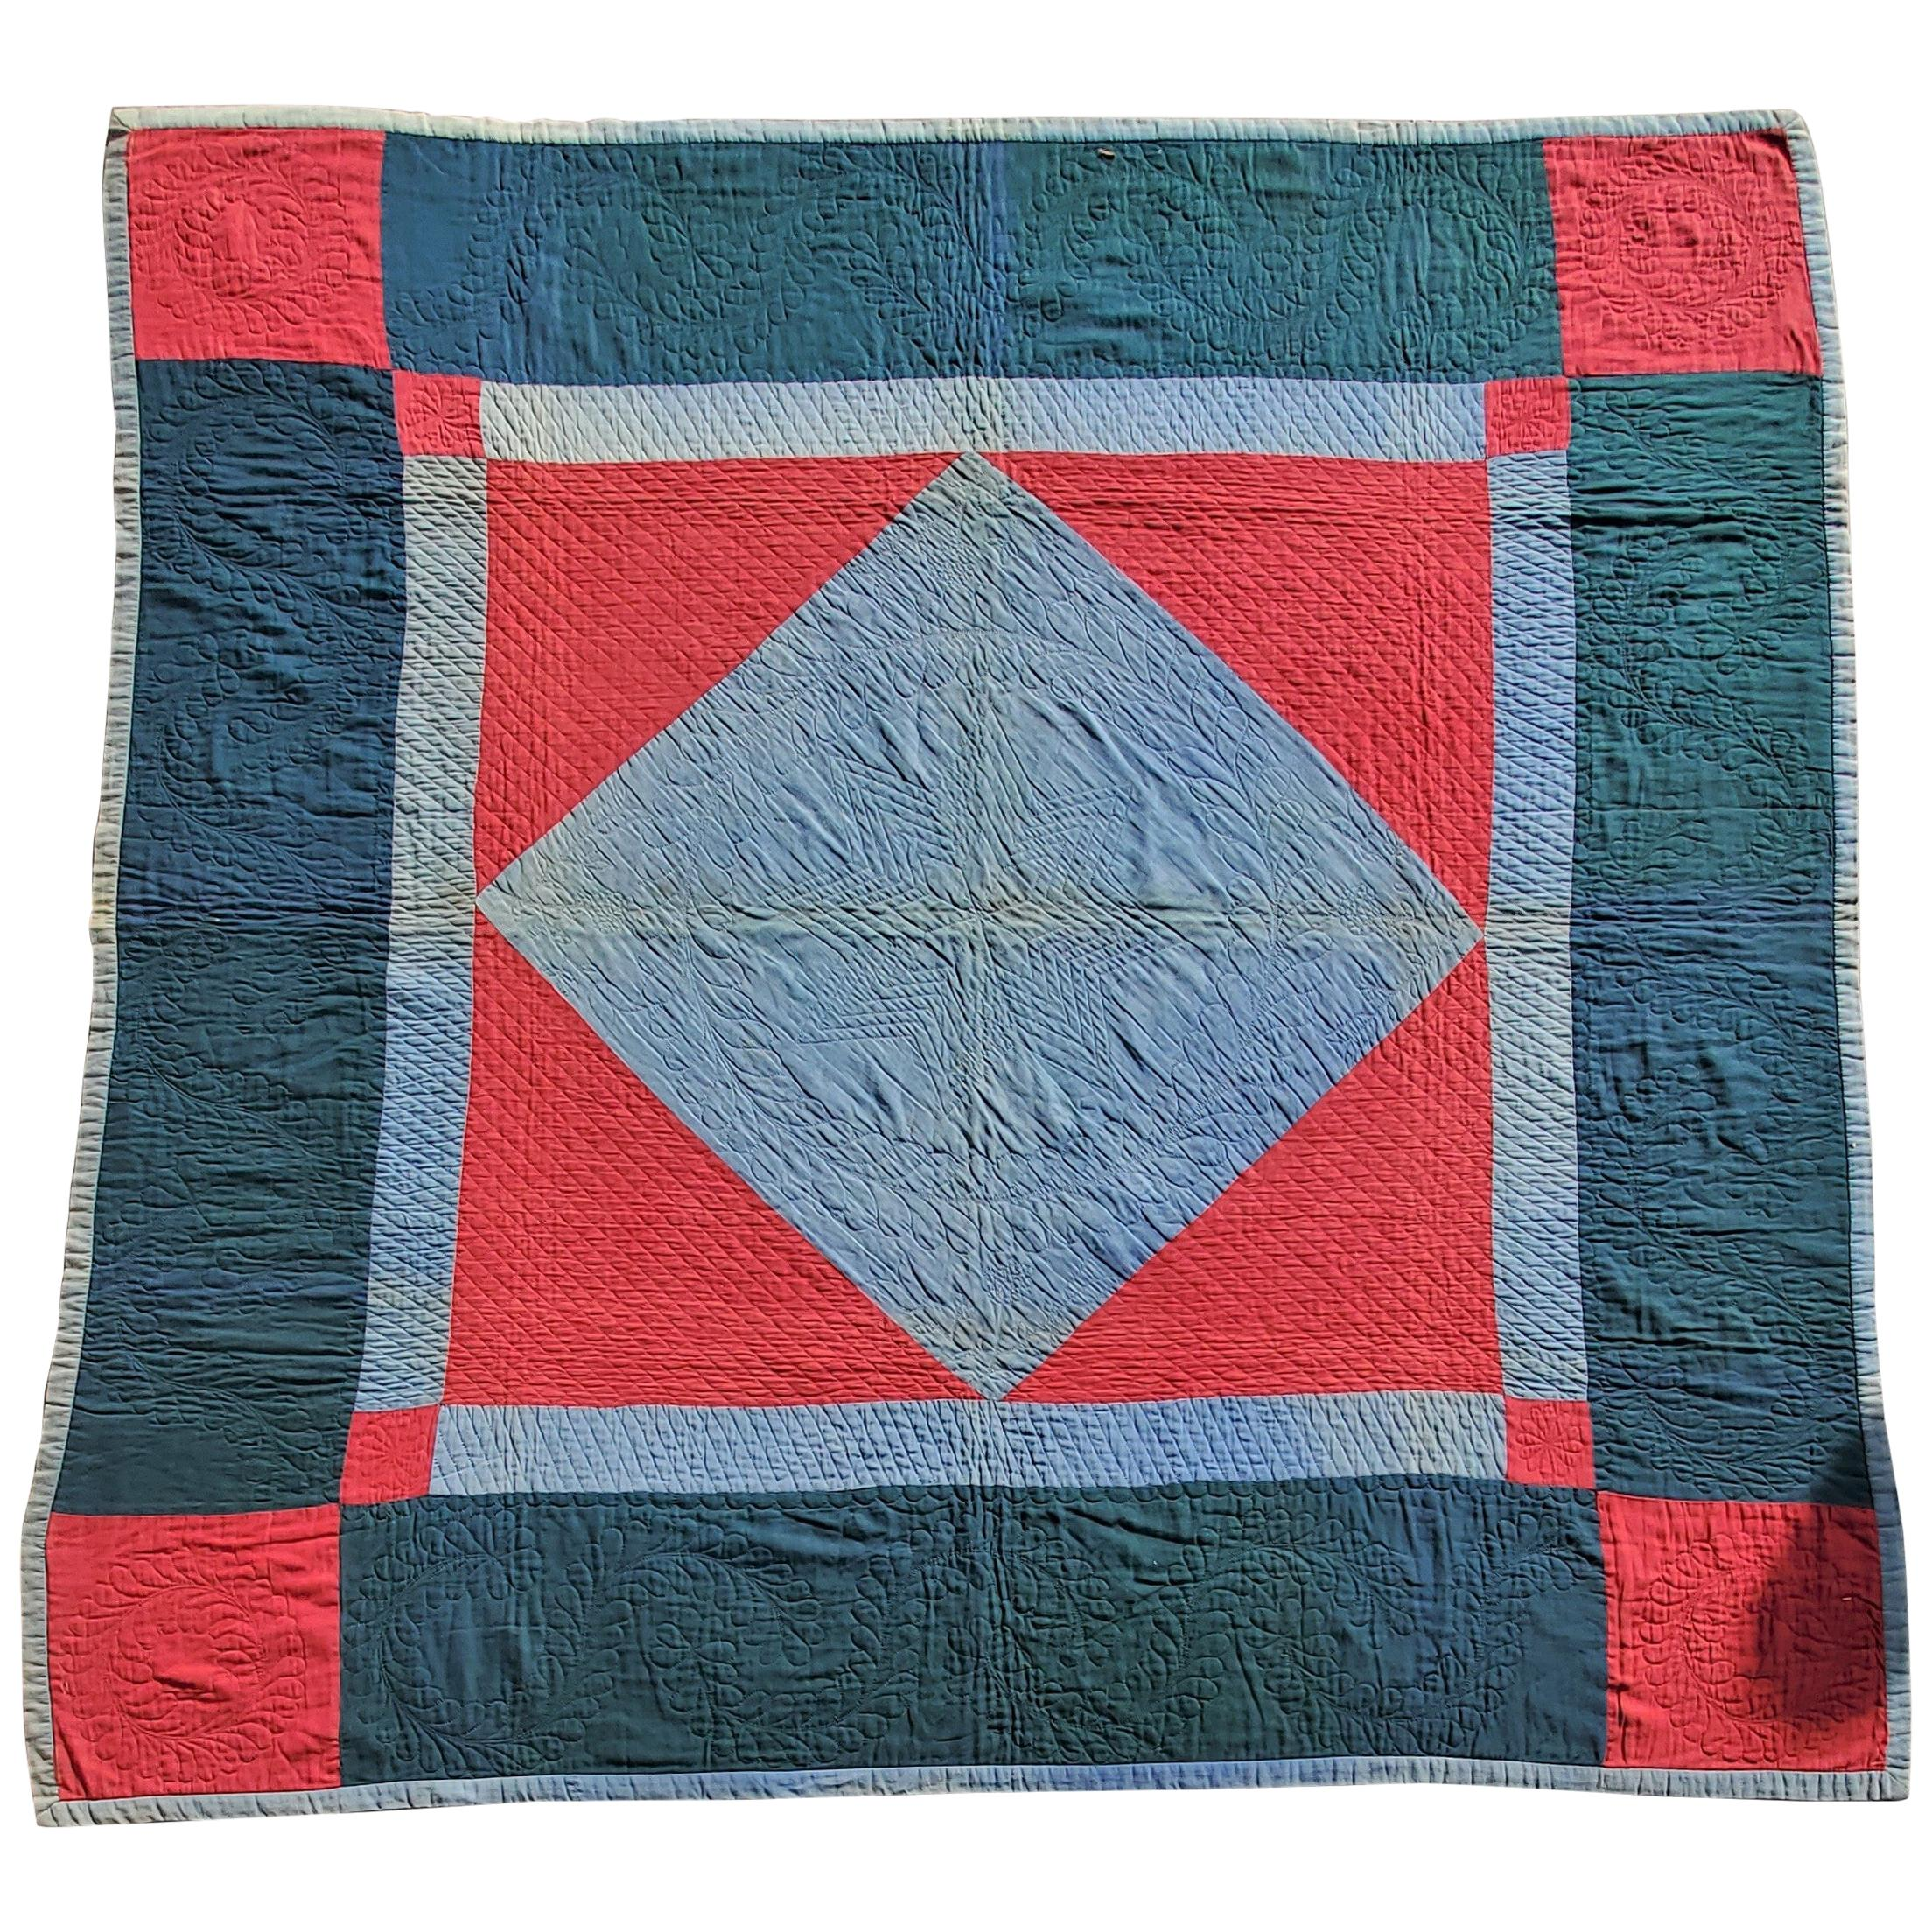 Amish Lancaster, County Pennsylvania Wool Diamond in a Square Quilt